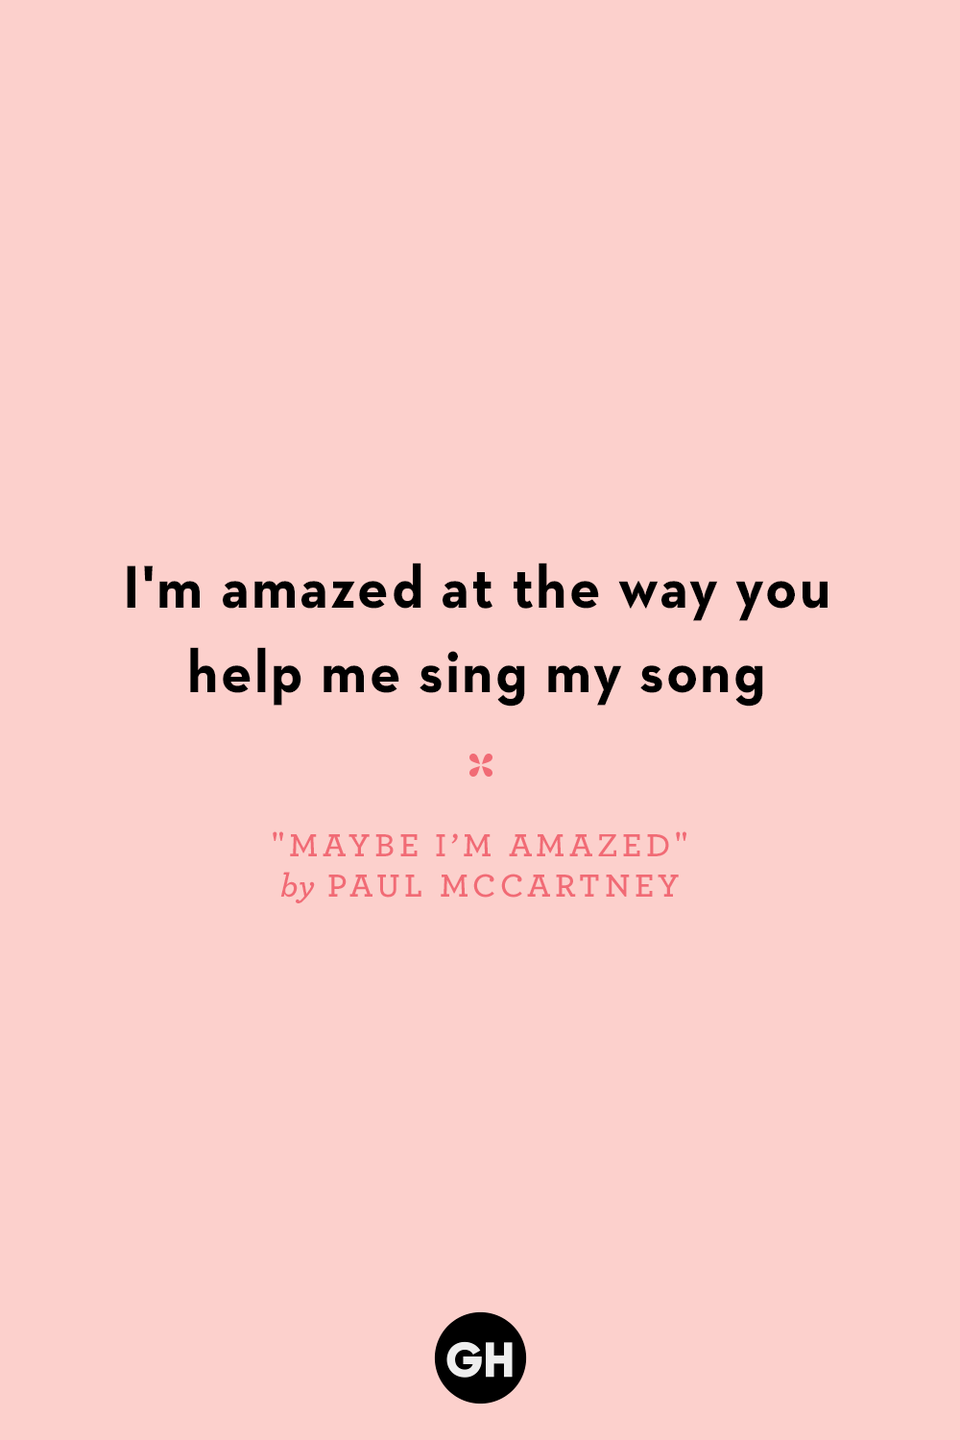 <p>I'm amazed at the way you help me sing my song</p>